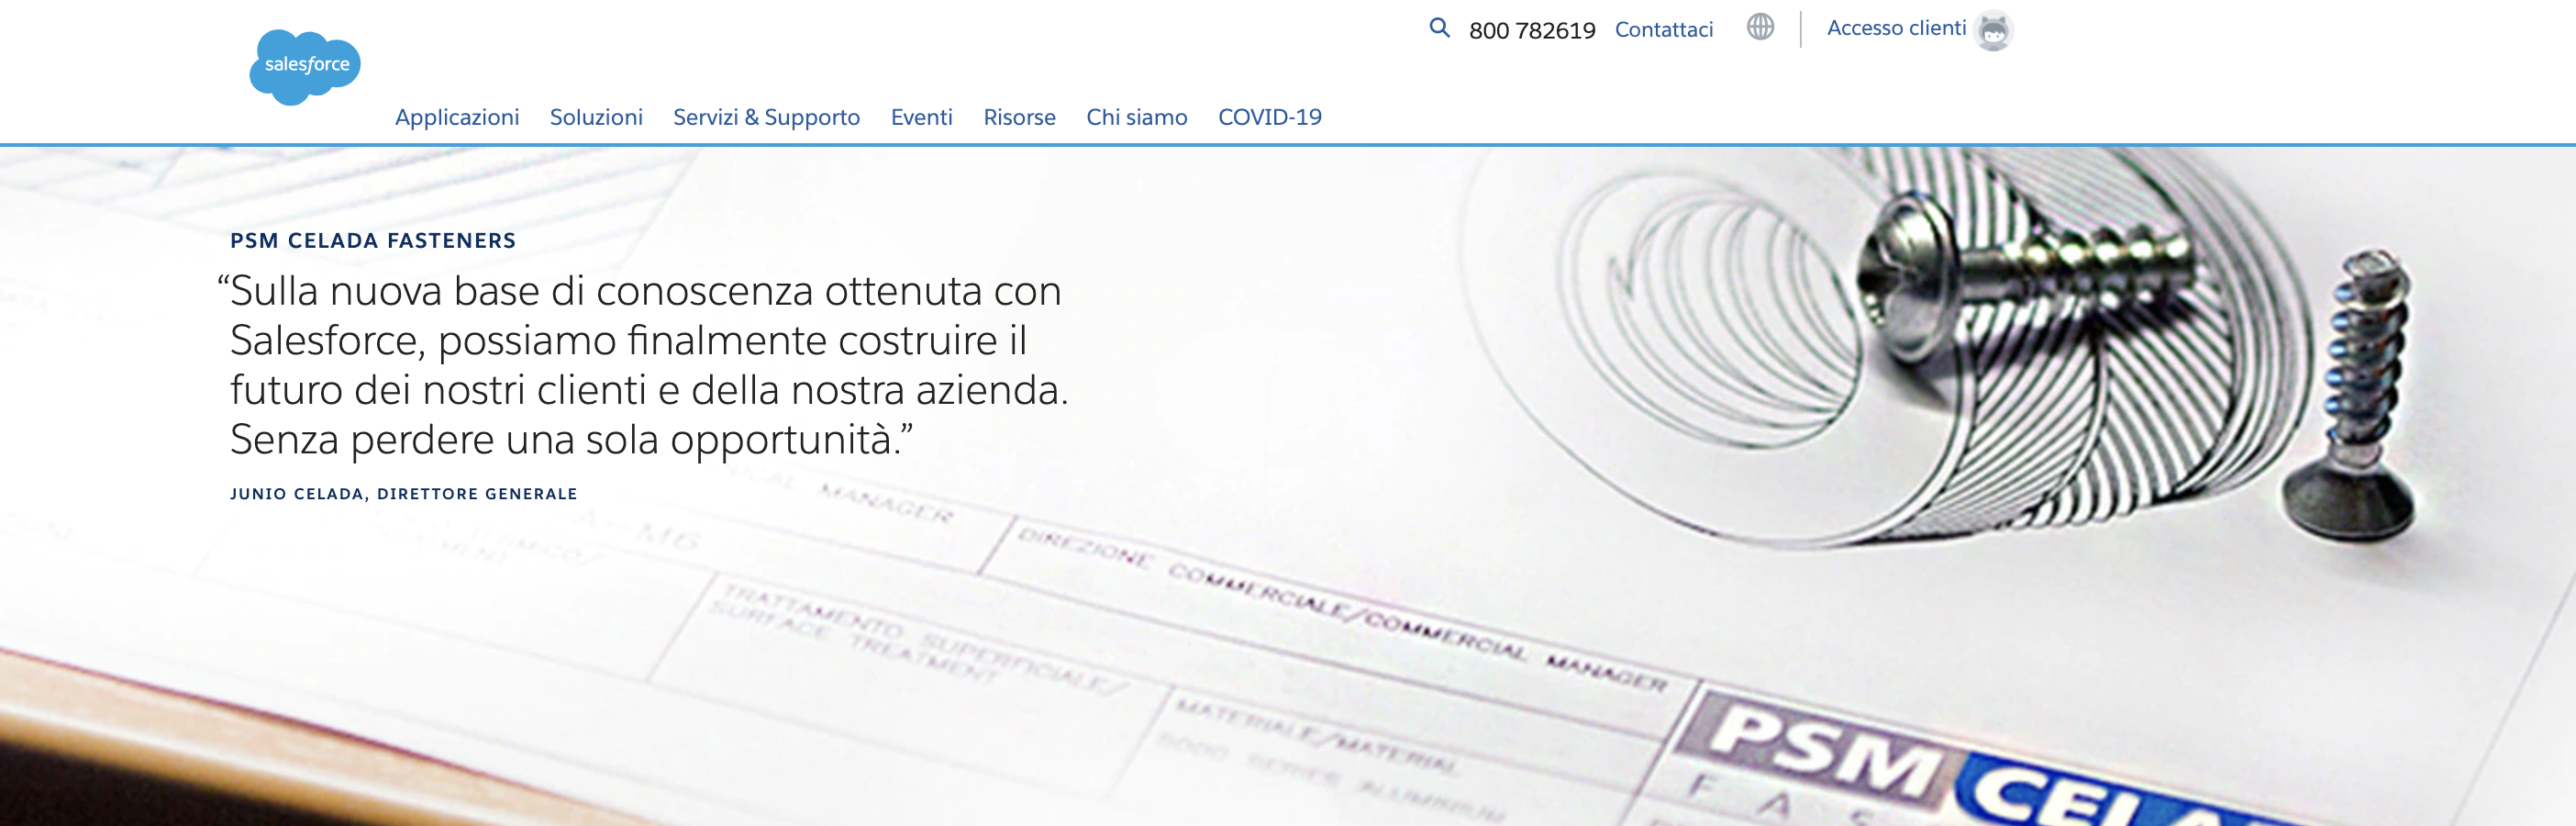 Homepage Salesforce PSM CELADA